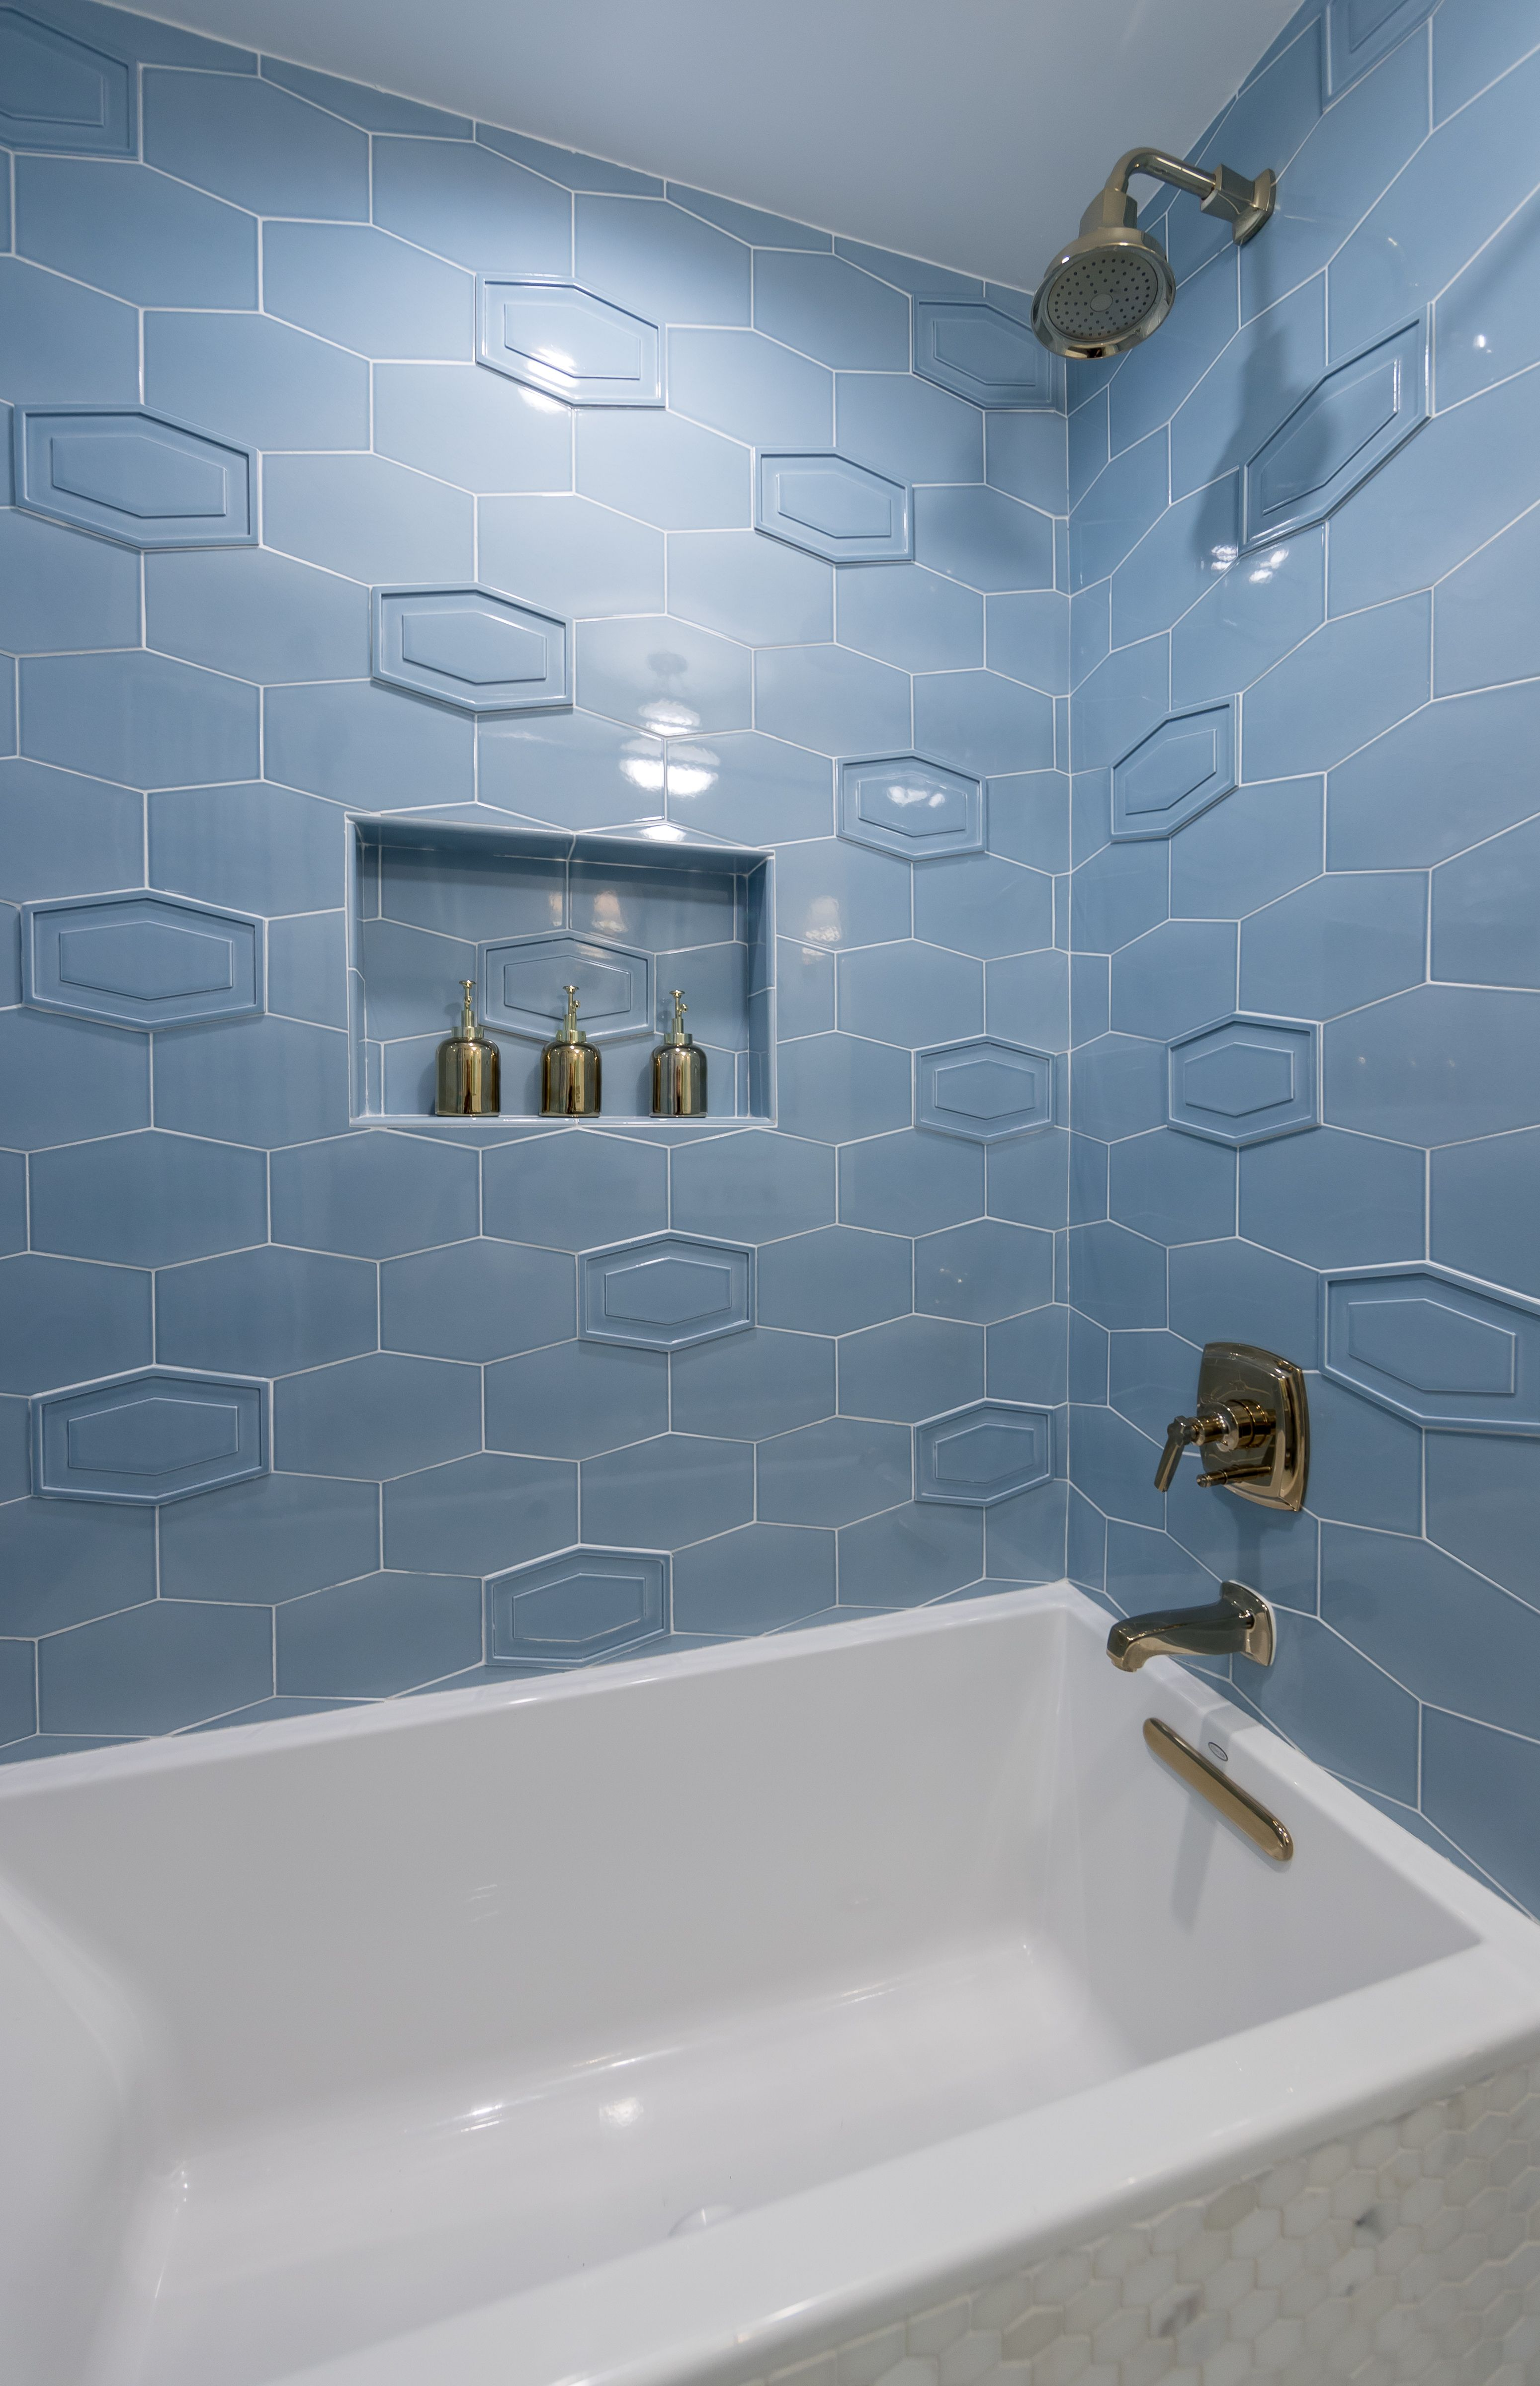 Studio Moderne Montclair Flat And Relief In Moonstone Click To View This Collection In 2020 Art Deco Tiles Walker Zanger Tile Architectural Decoration